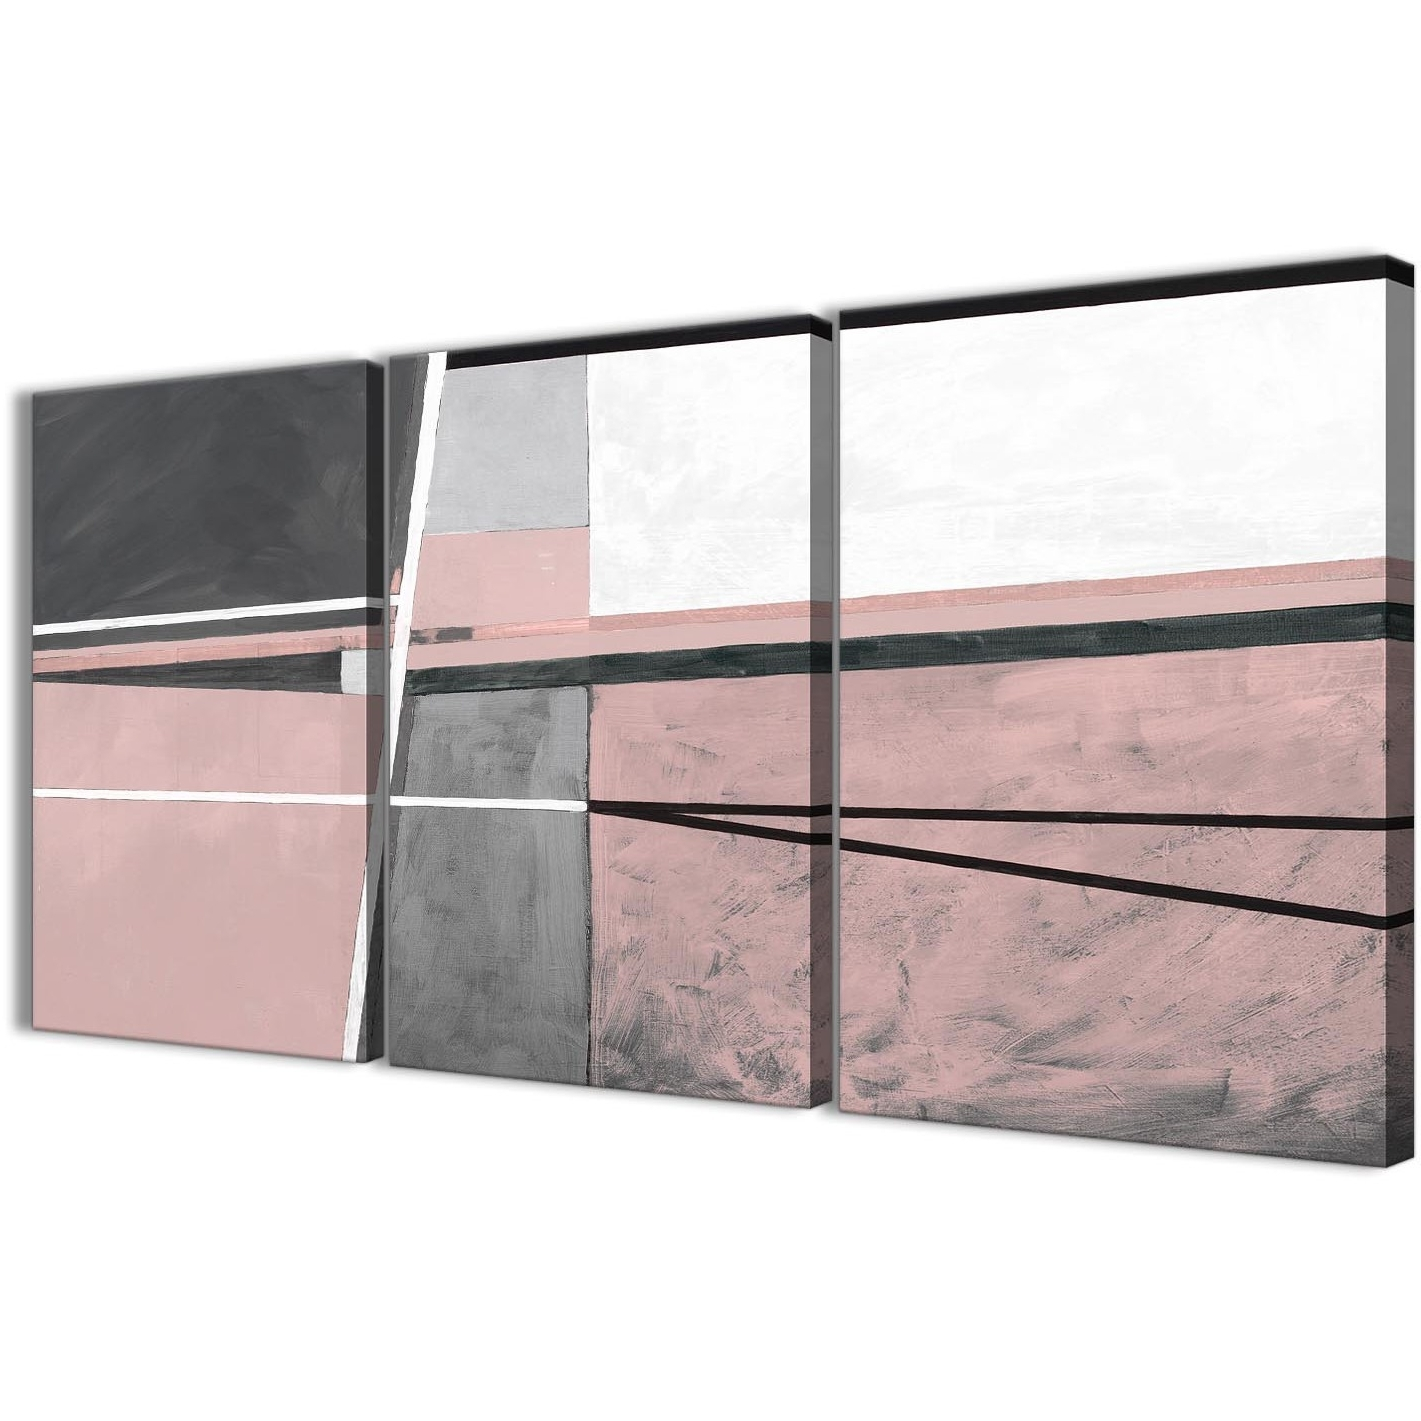 Best And Newest Grey Wall Art For 3 Panel Blush Pink Grey Painting Kitchen Canvas Wall Art Accessories (View 5 of 20)